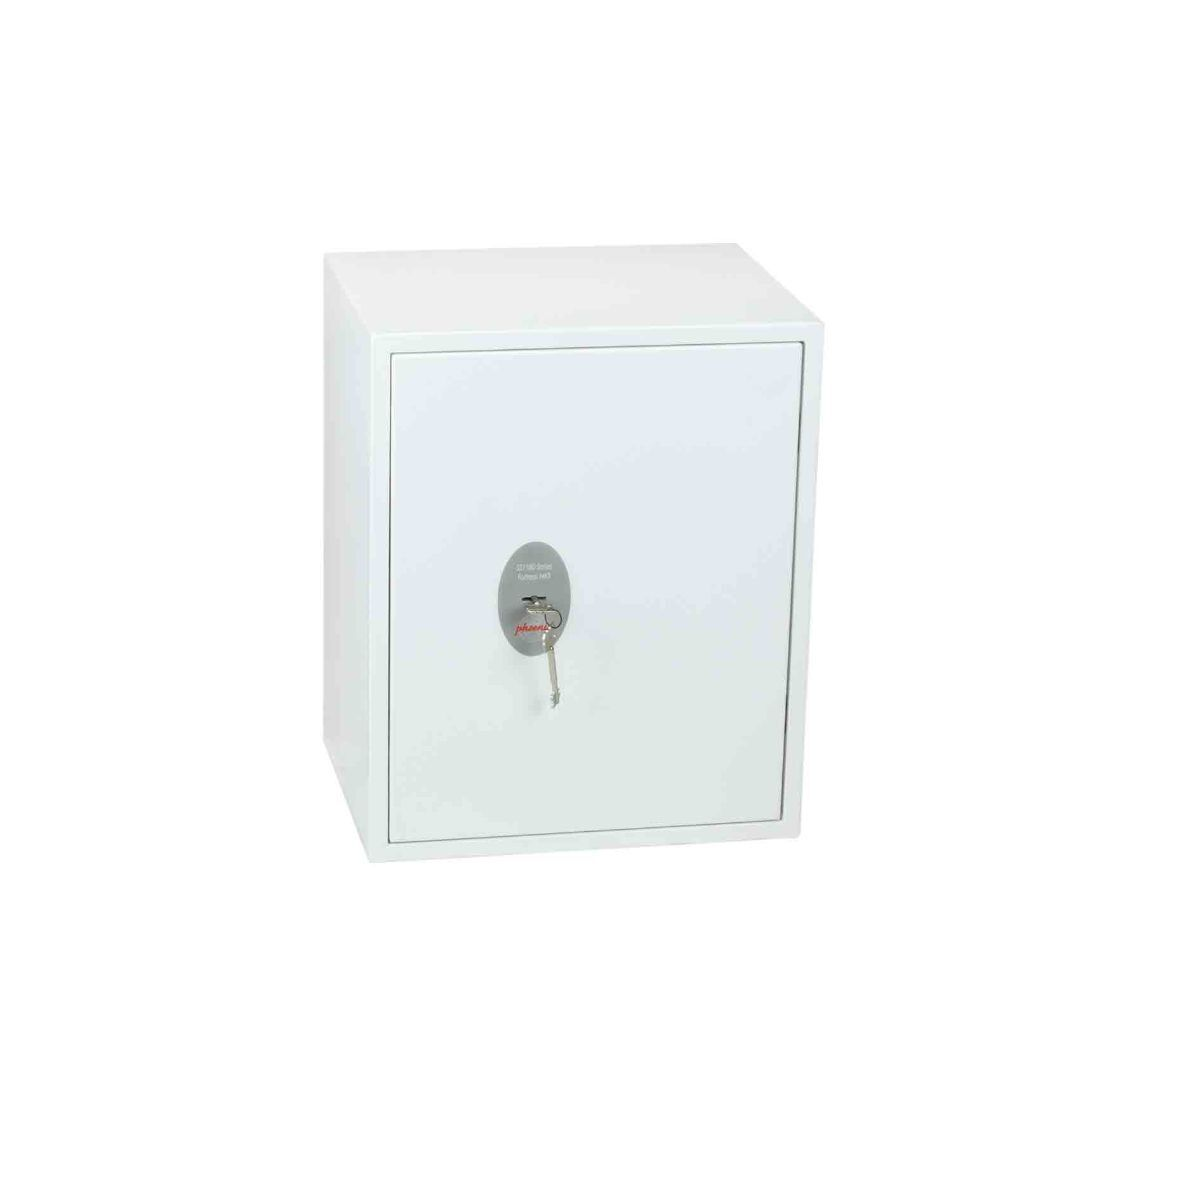 Phoenix Fortress S2 Security Safe with Key Lock Size 3